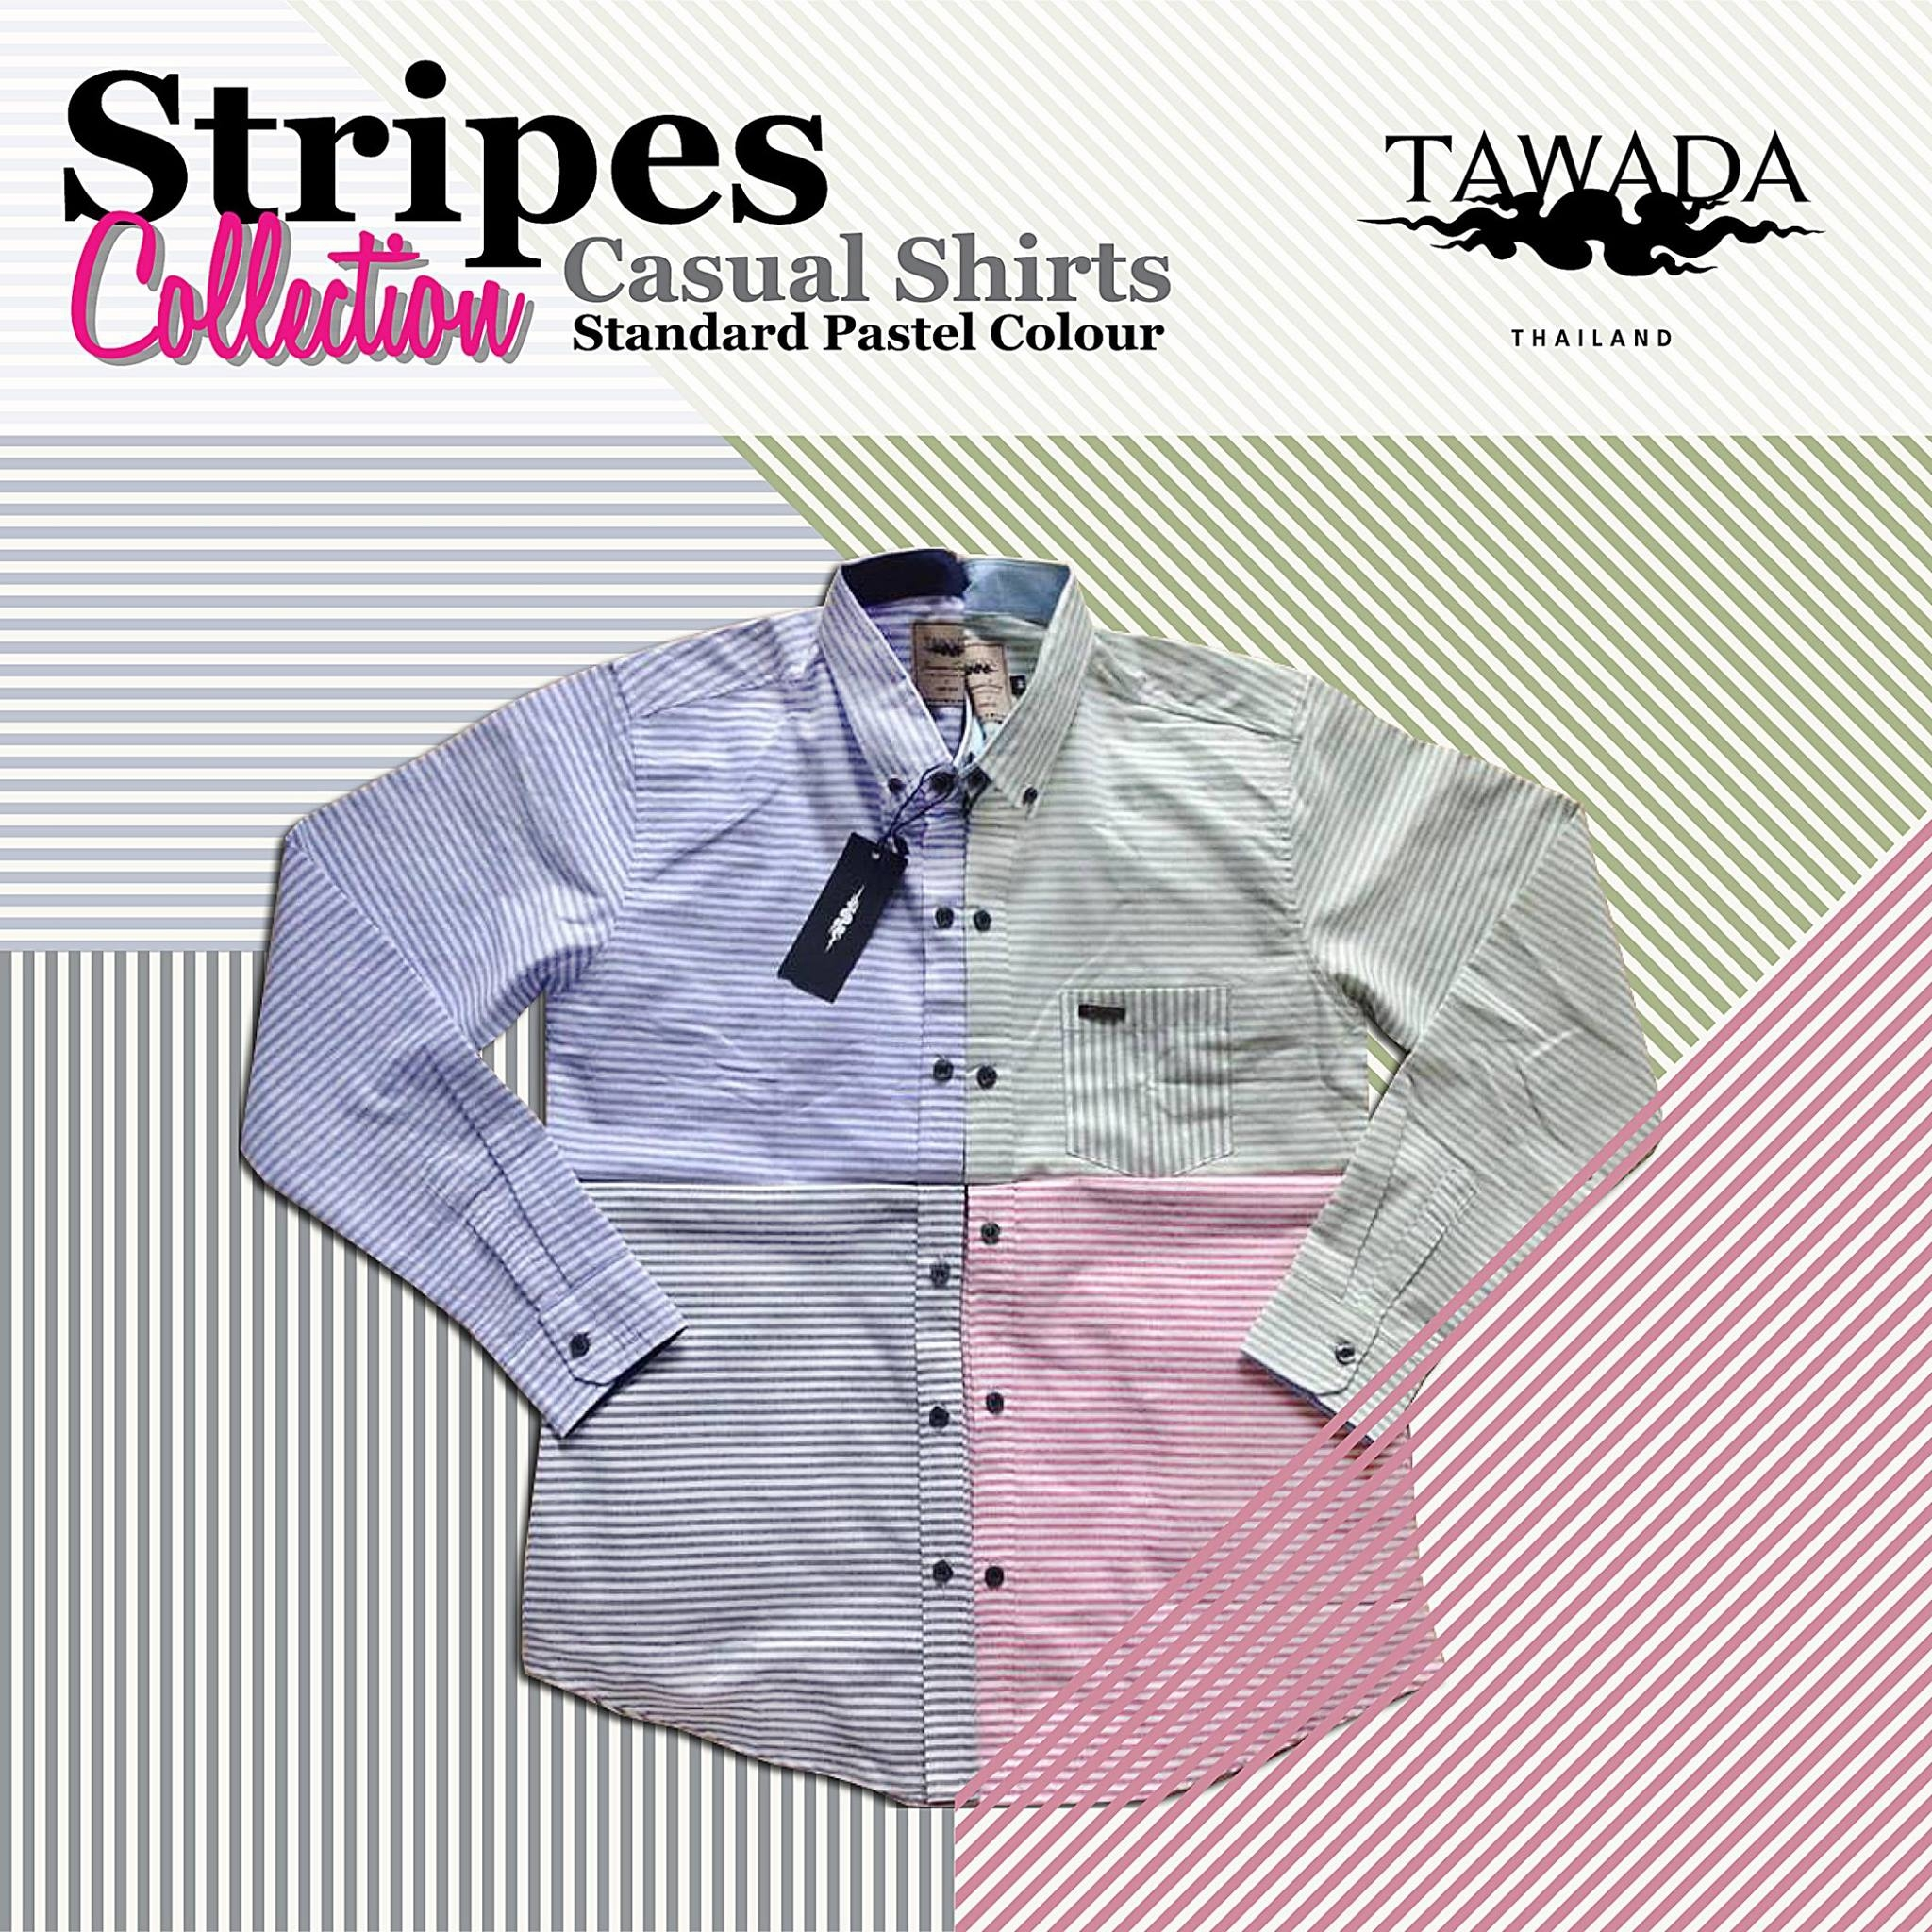 TAWADA Striped Collection - livingclck.com 089-9799902